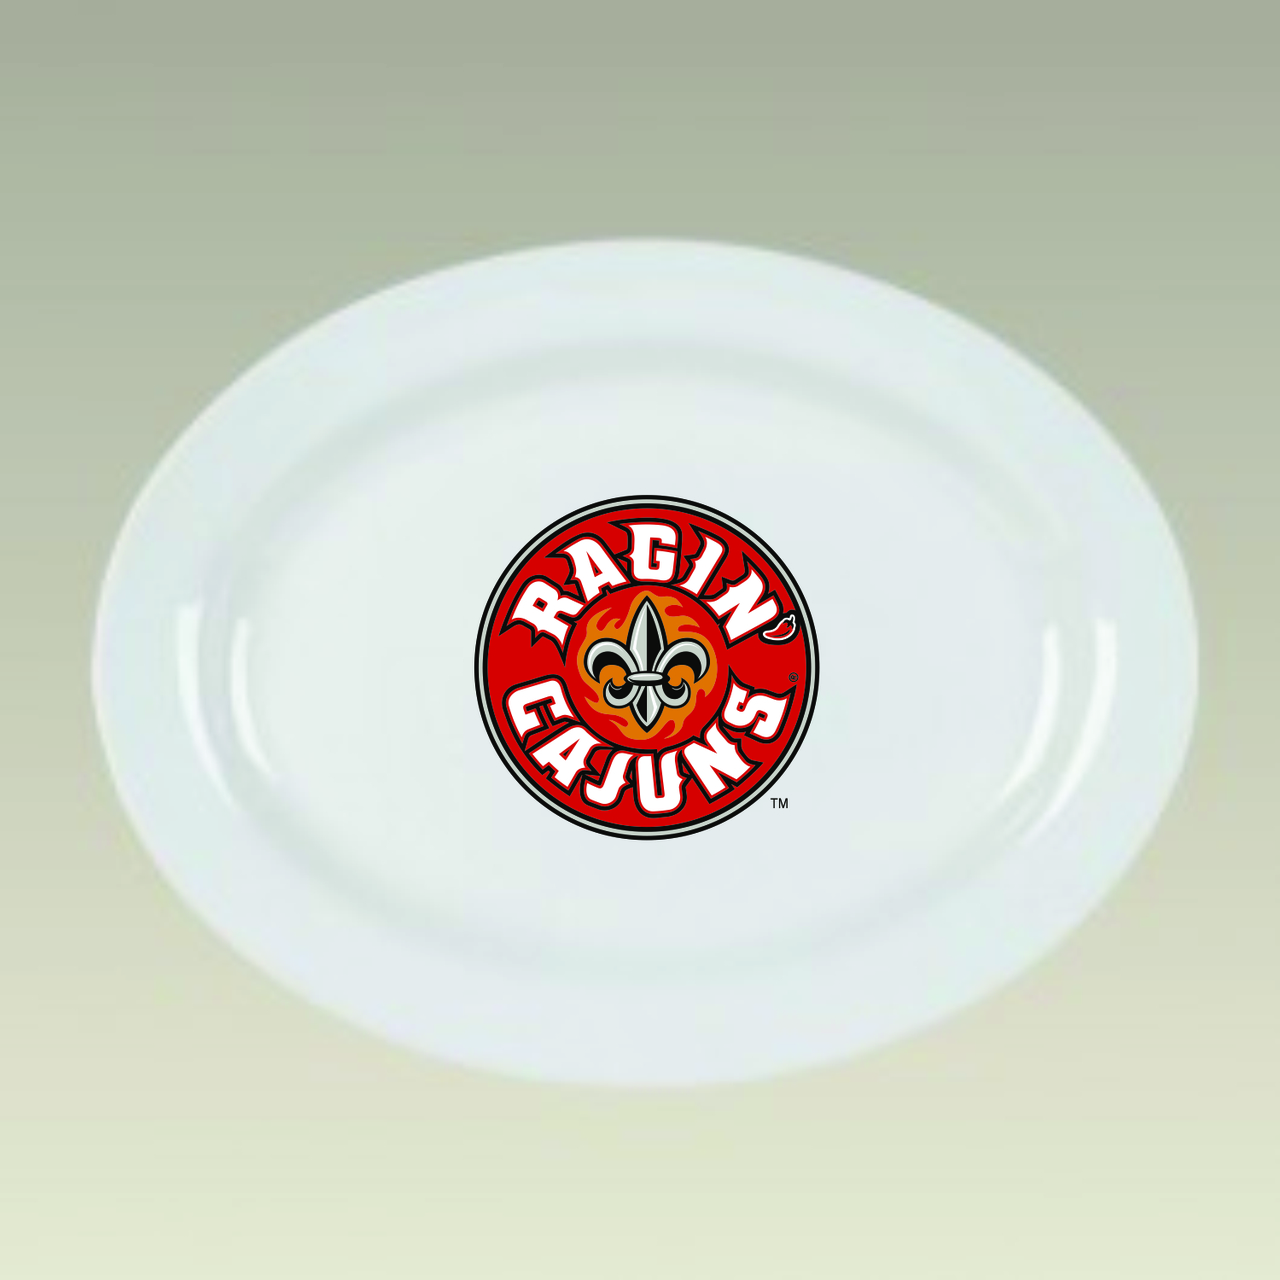 Louisiana Ragin' Cajuns Platters & Serving Accessories